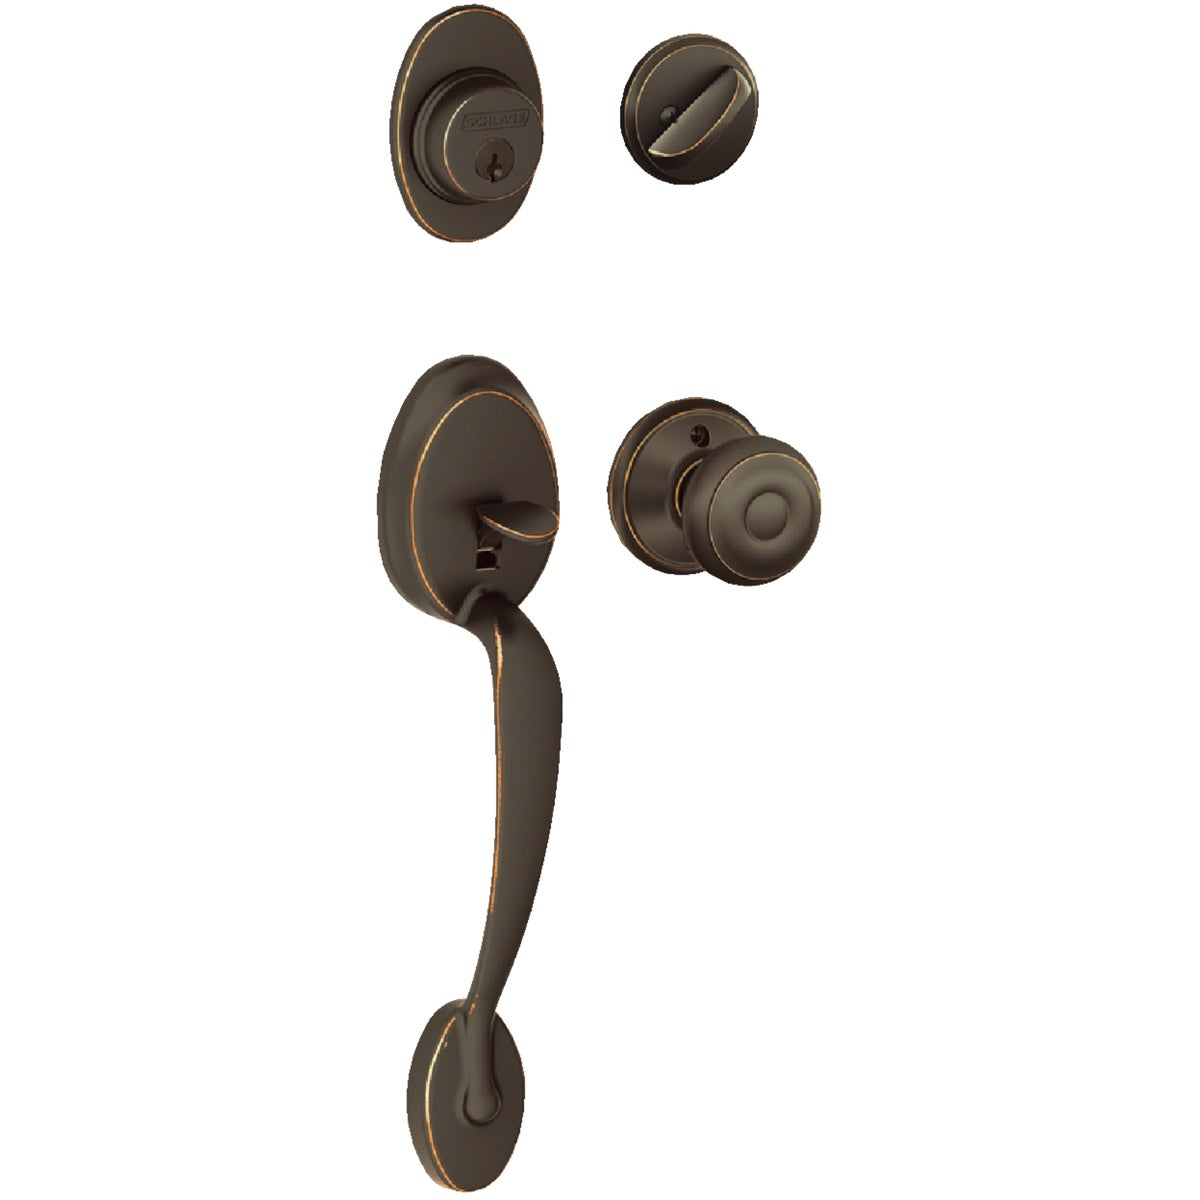 ABRZ PLYMOUTH HANDLESET - F60VPLYXGEO716 by Schlage Lock Co